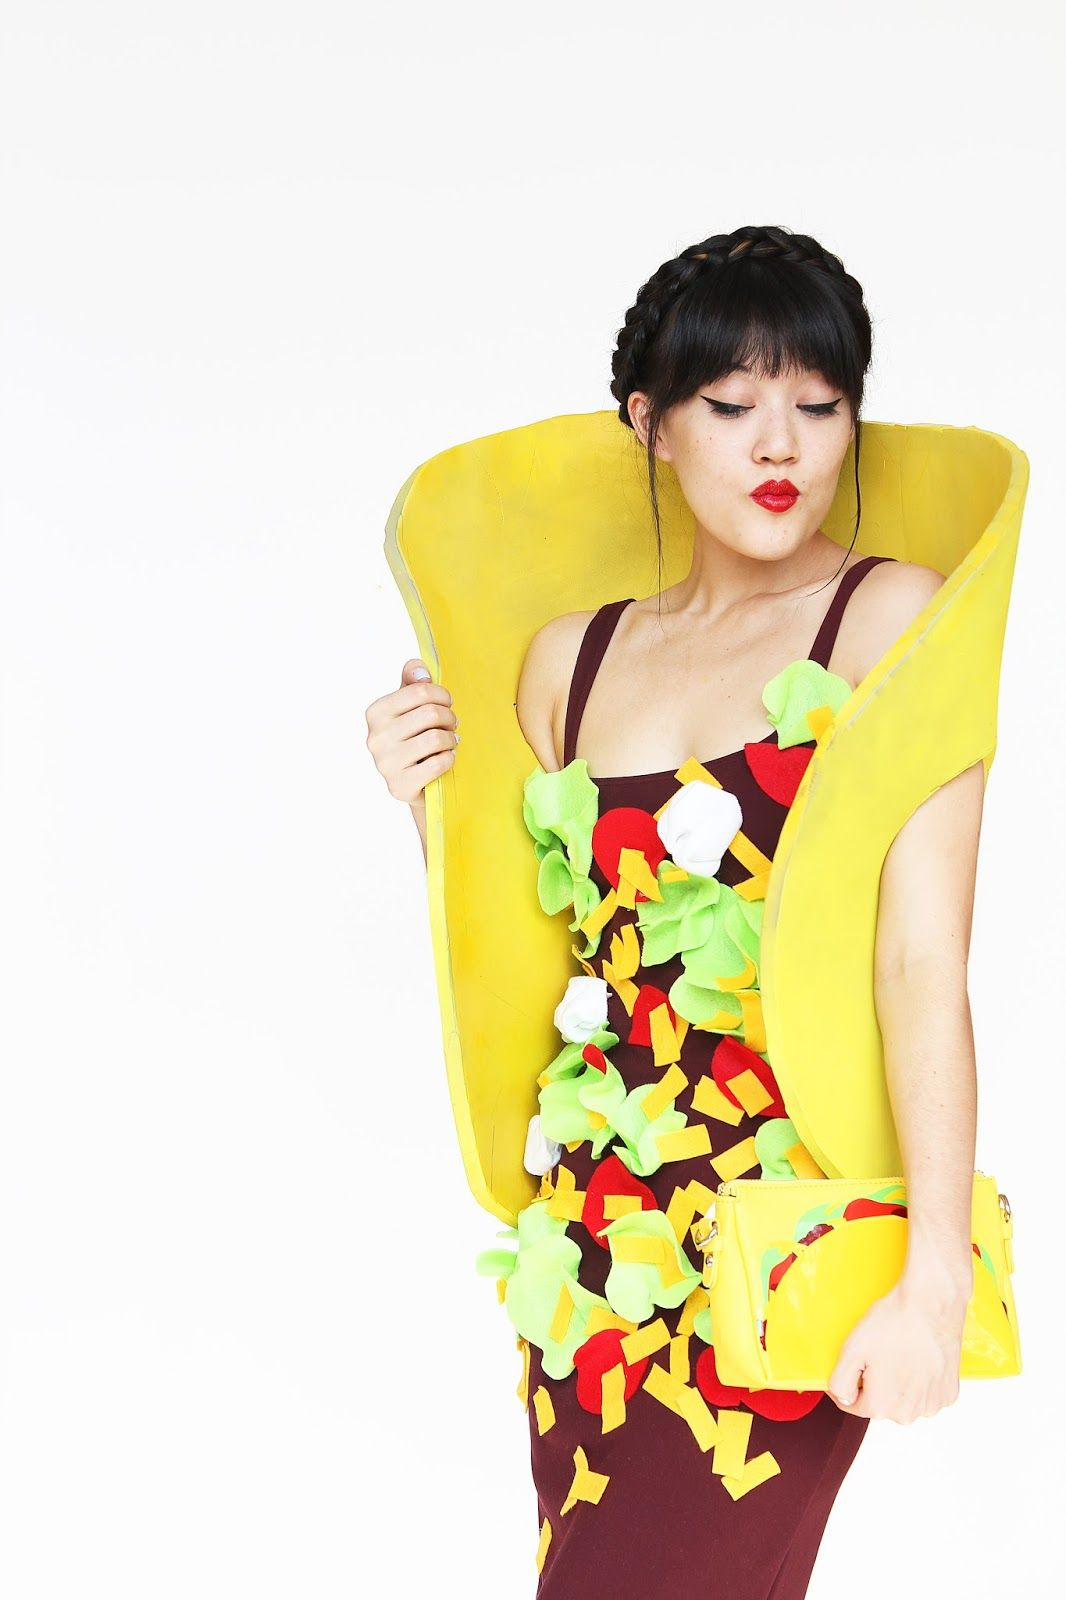 5 DIY Colorful Foodie-Inspired Halloween Costumes 5 DIY Colorful Foodie-Inspired Halloween Costumes new photo